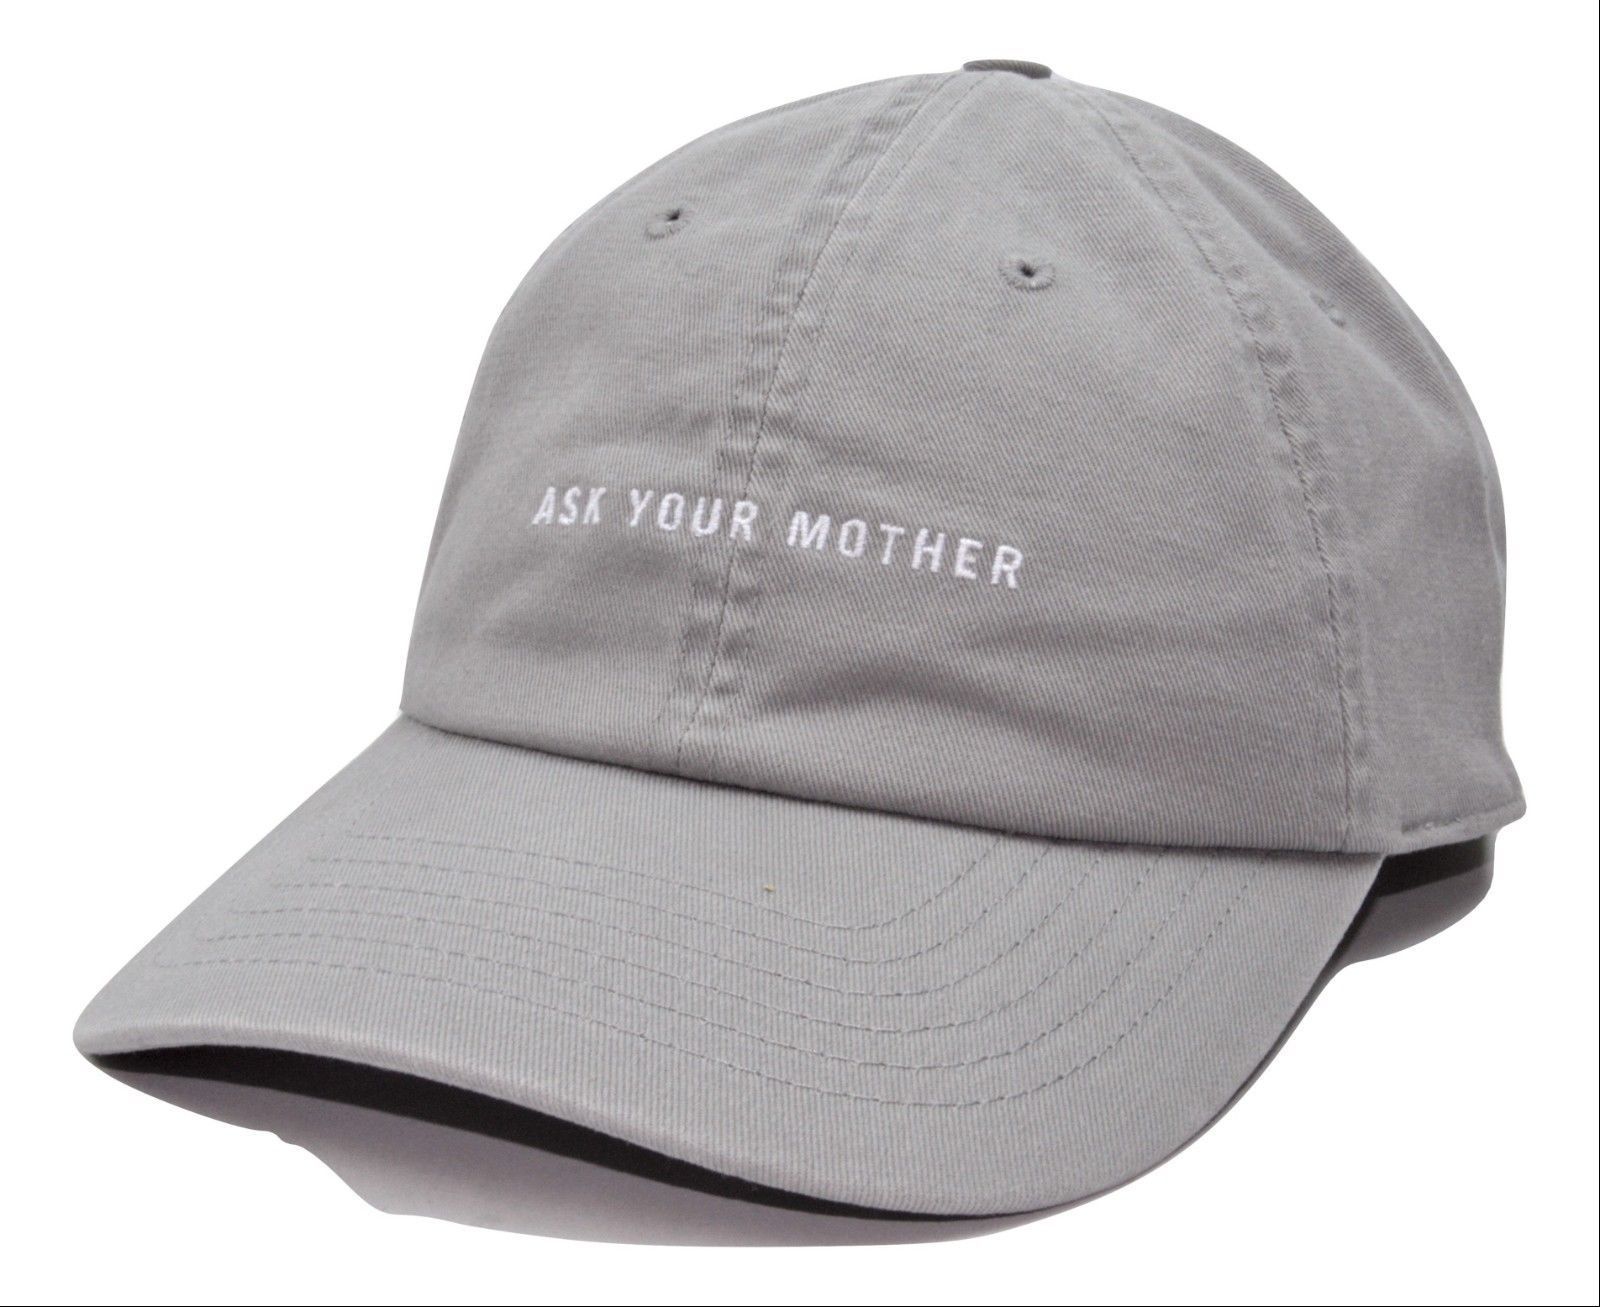 Ask Your Mother Gray Relaxed Fit Adjustable Baseball Cap Classic Style Dad Hat